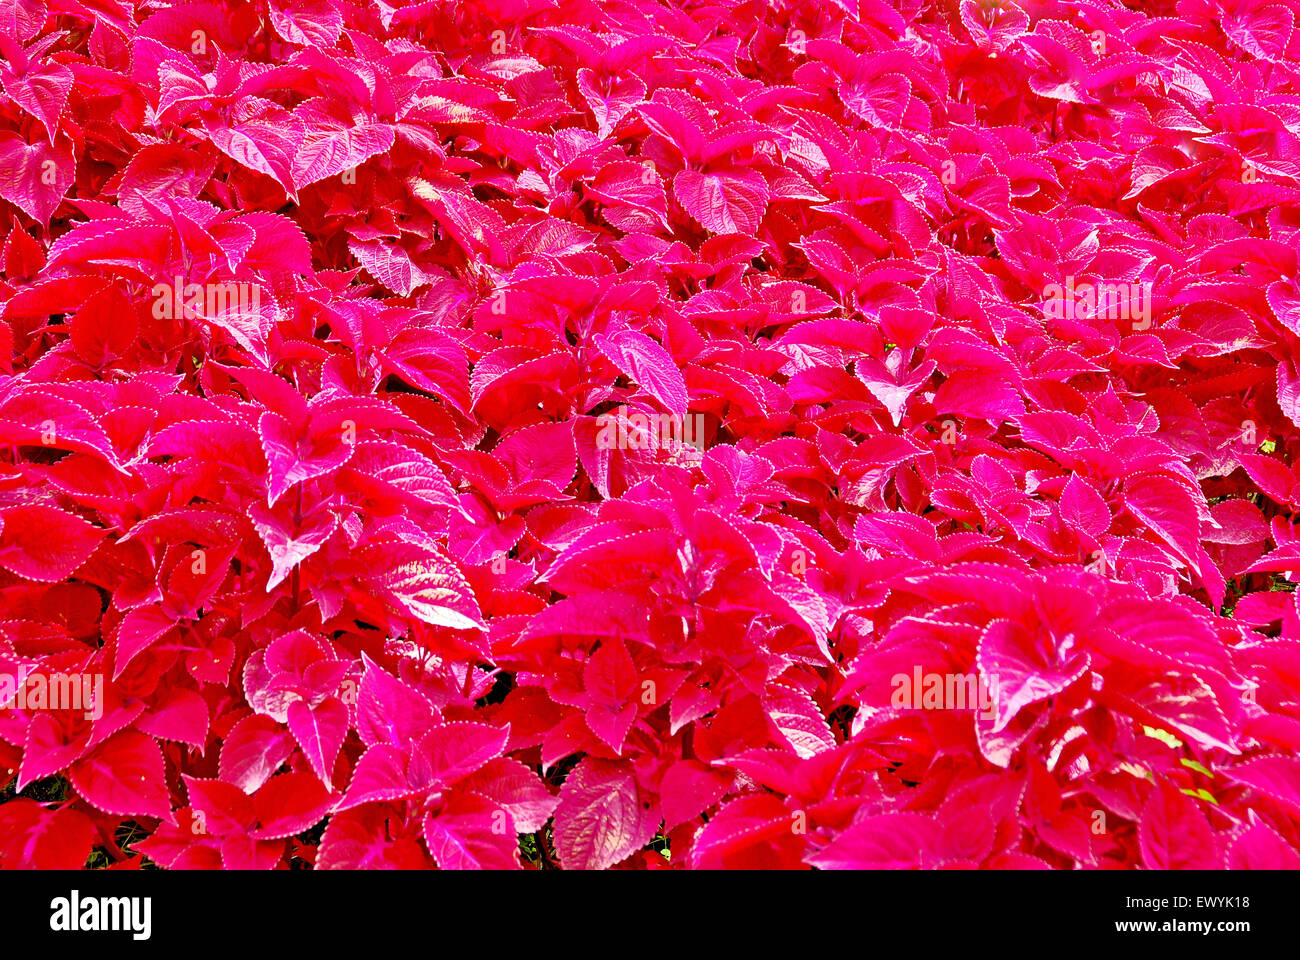 A Bush Of Red Flowers And Red Leaves In A Garden In Boquete Chiriqui